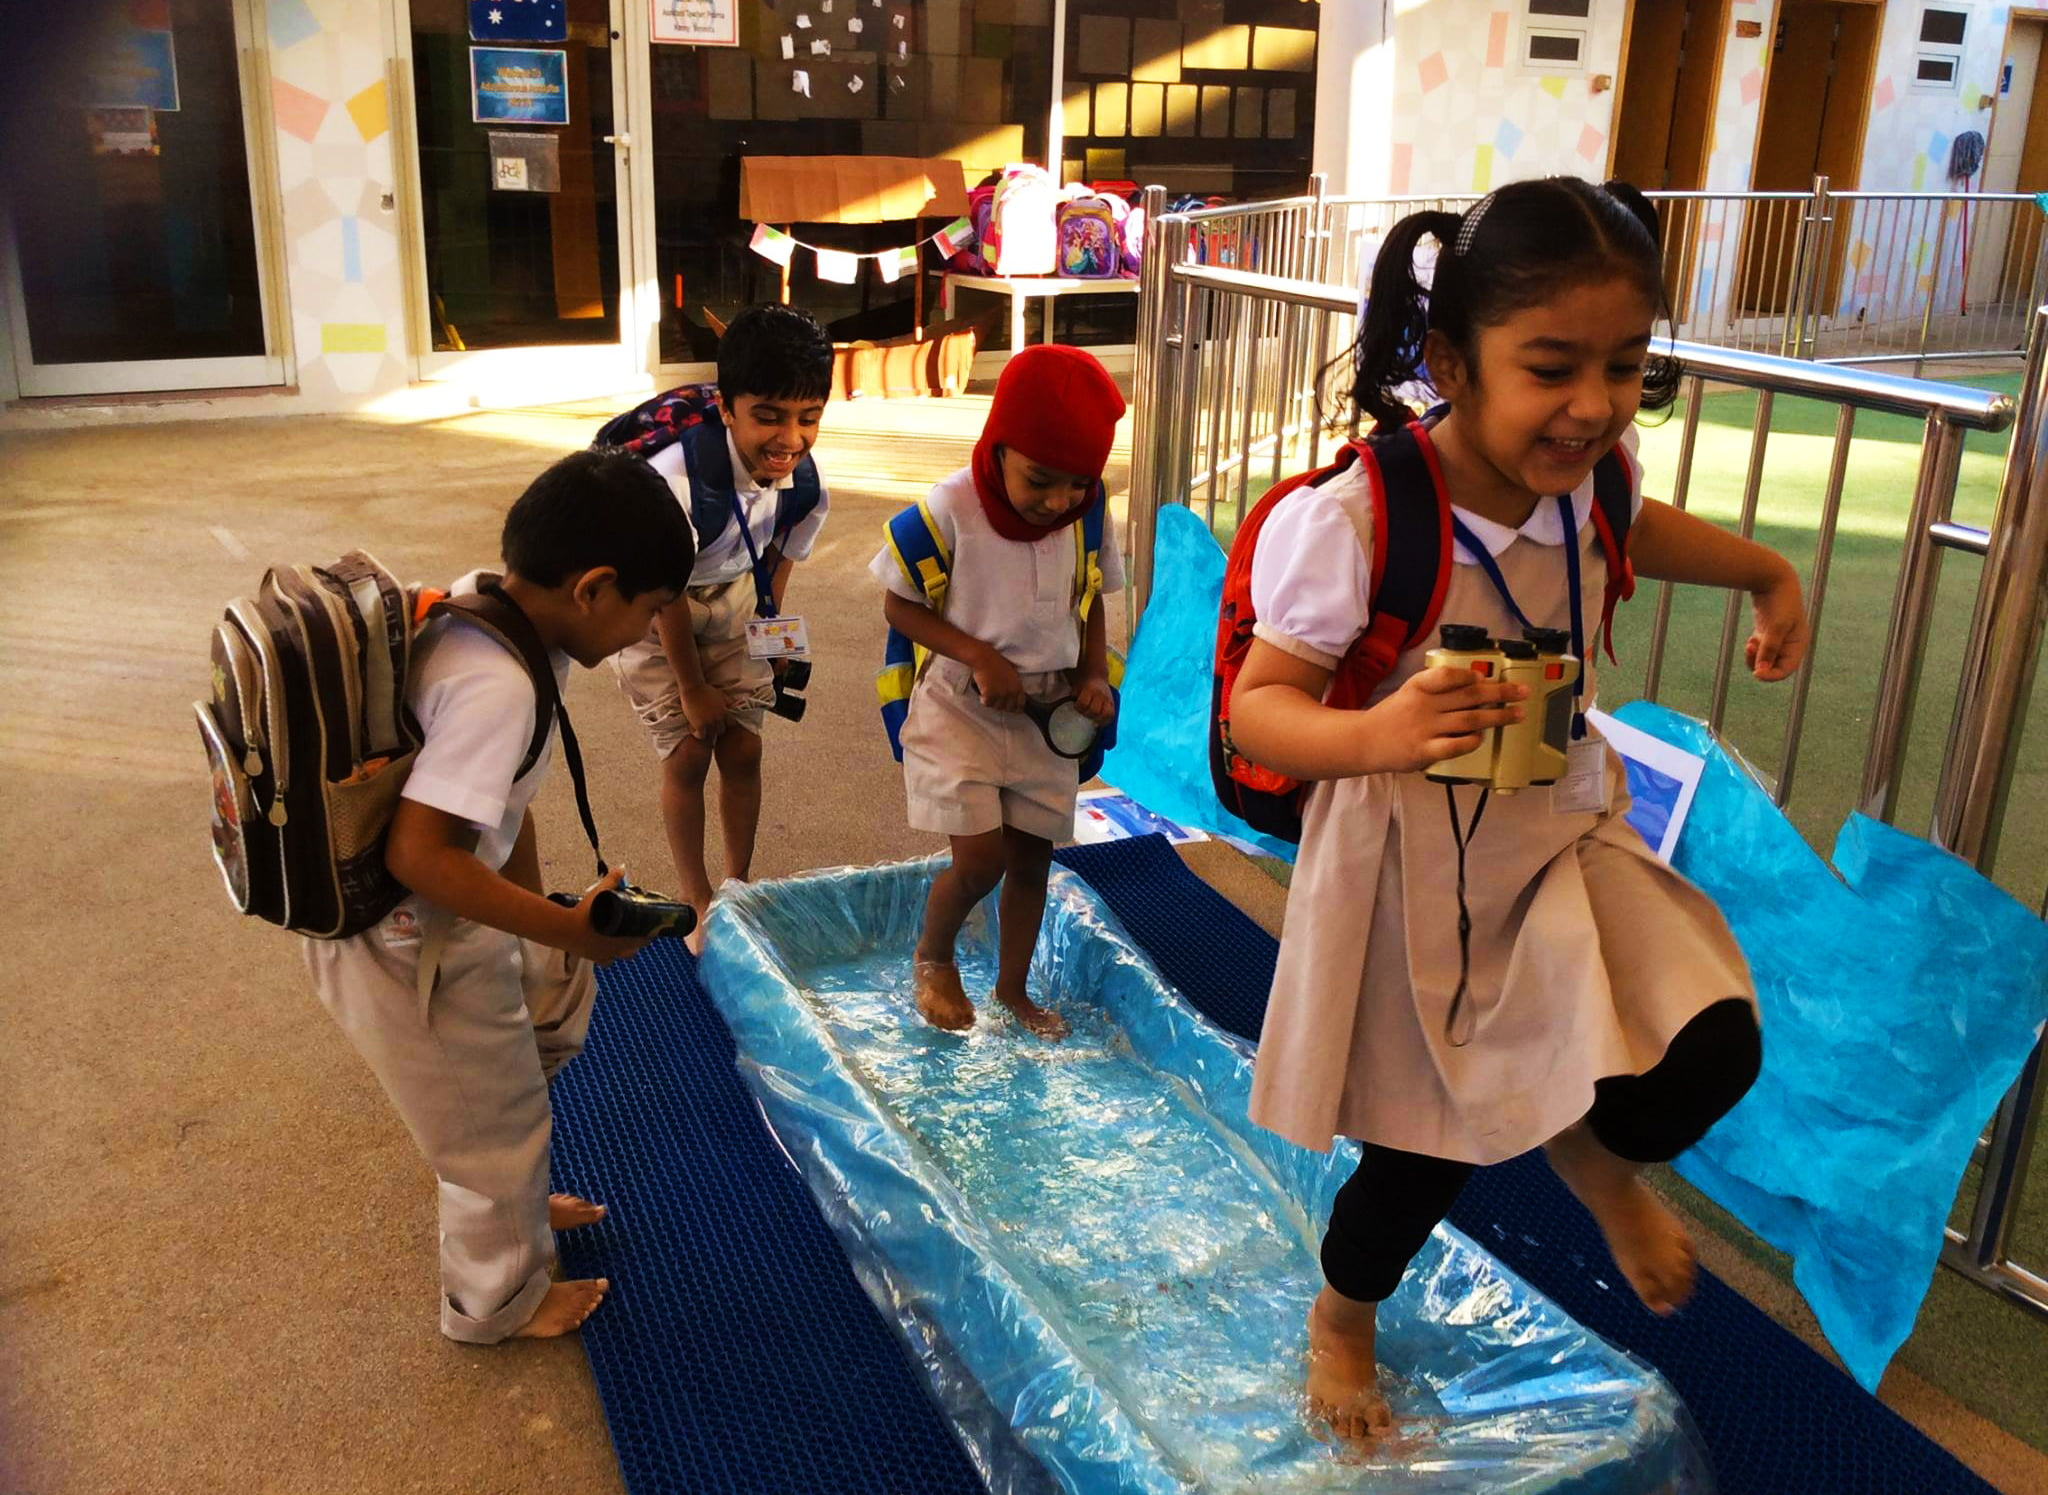 Children at the Ambassador Kindergarten in Dubai learning through water play